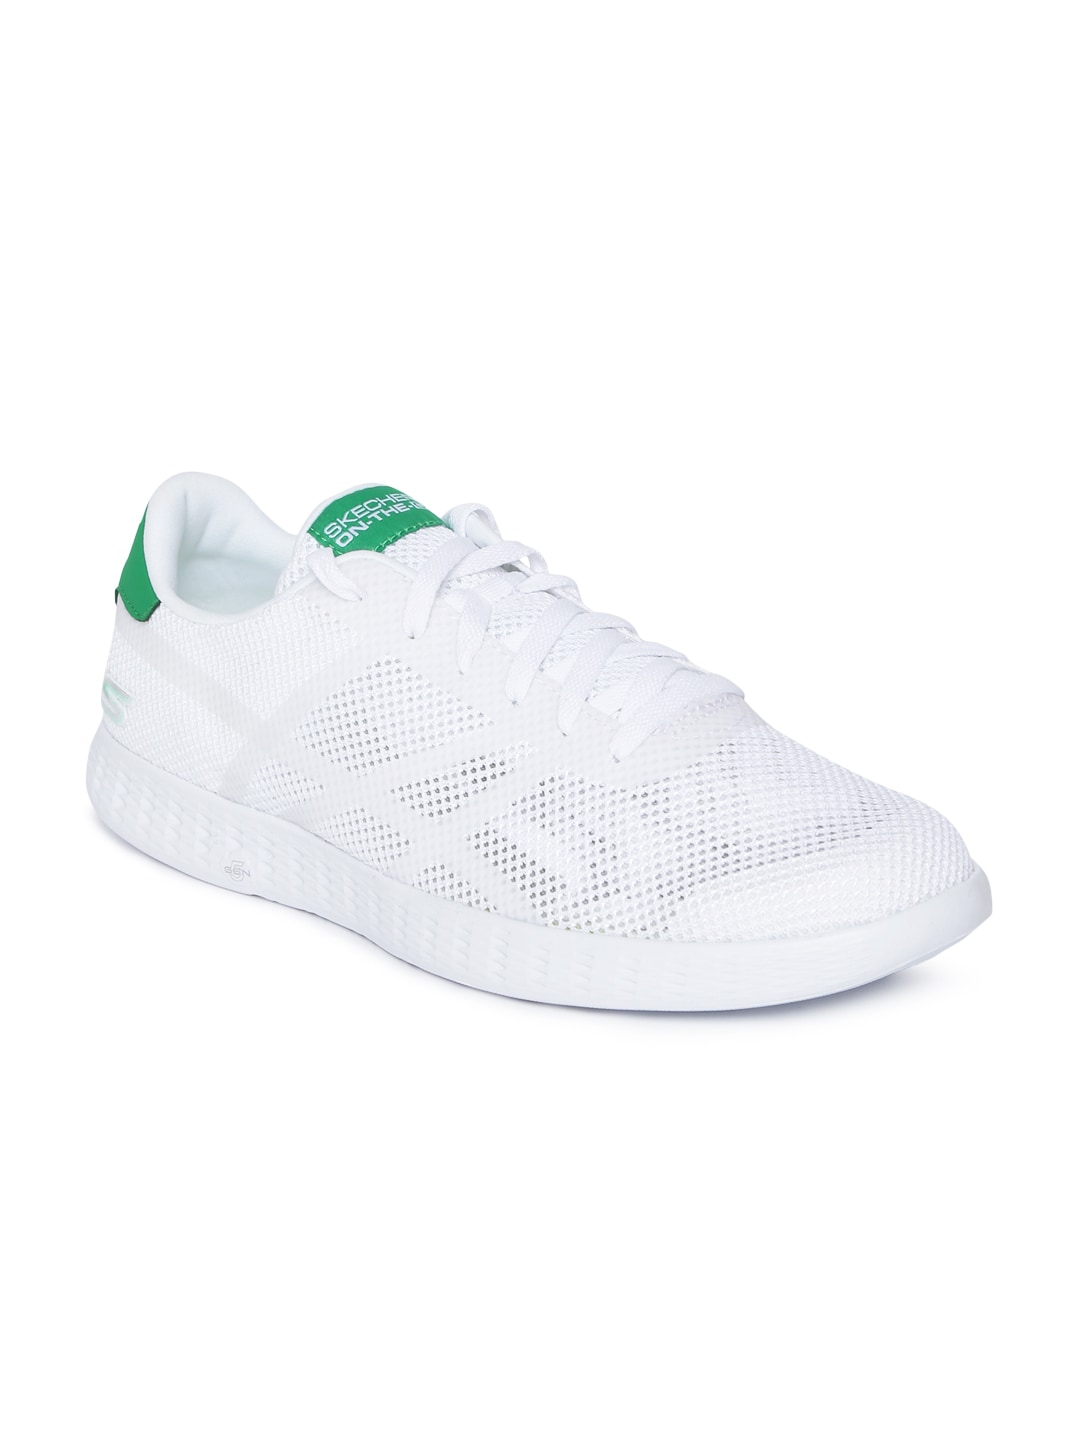 fee50d929df9f5 Skechers - Buy Skechers Footwear Online at Best Prices